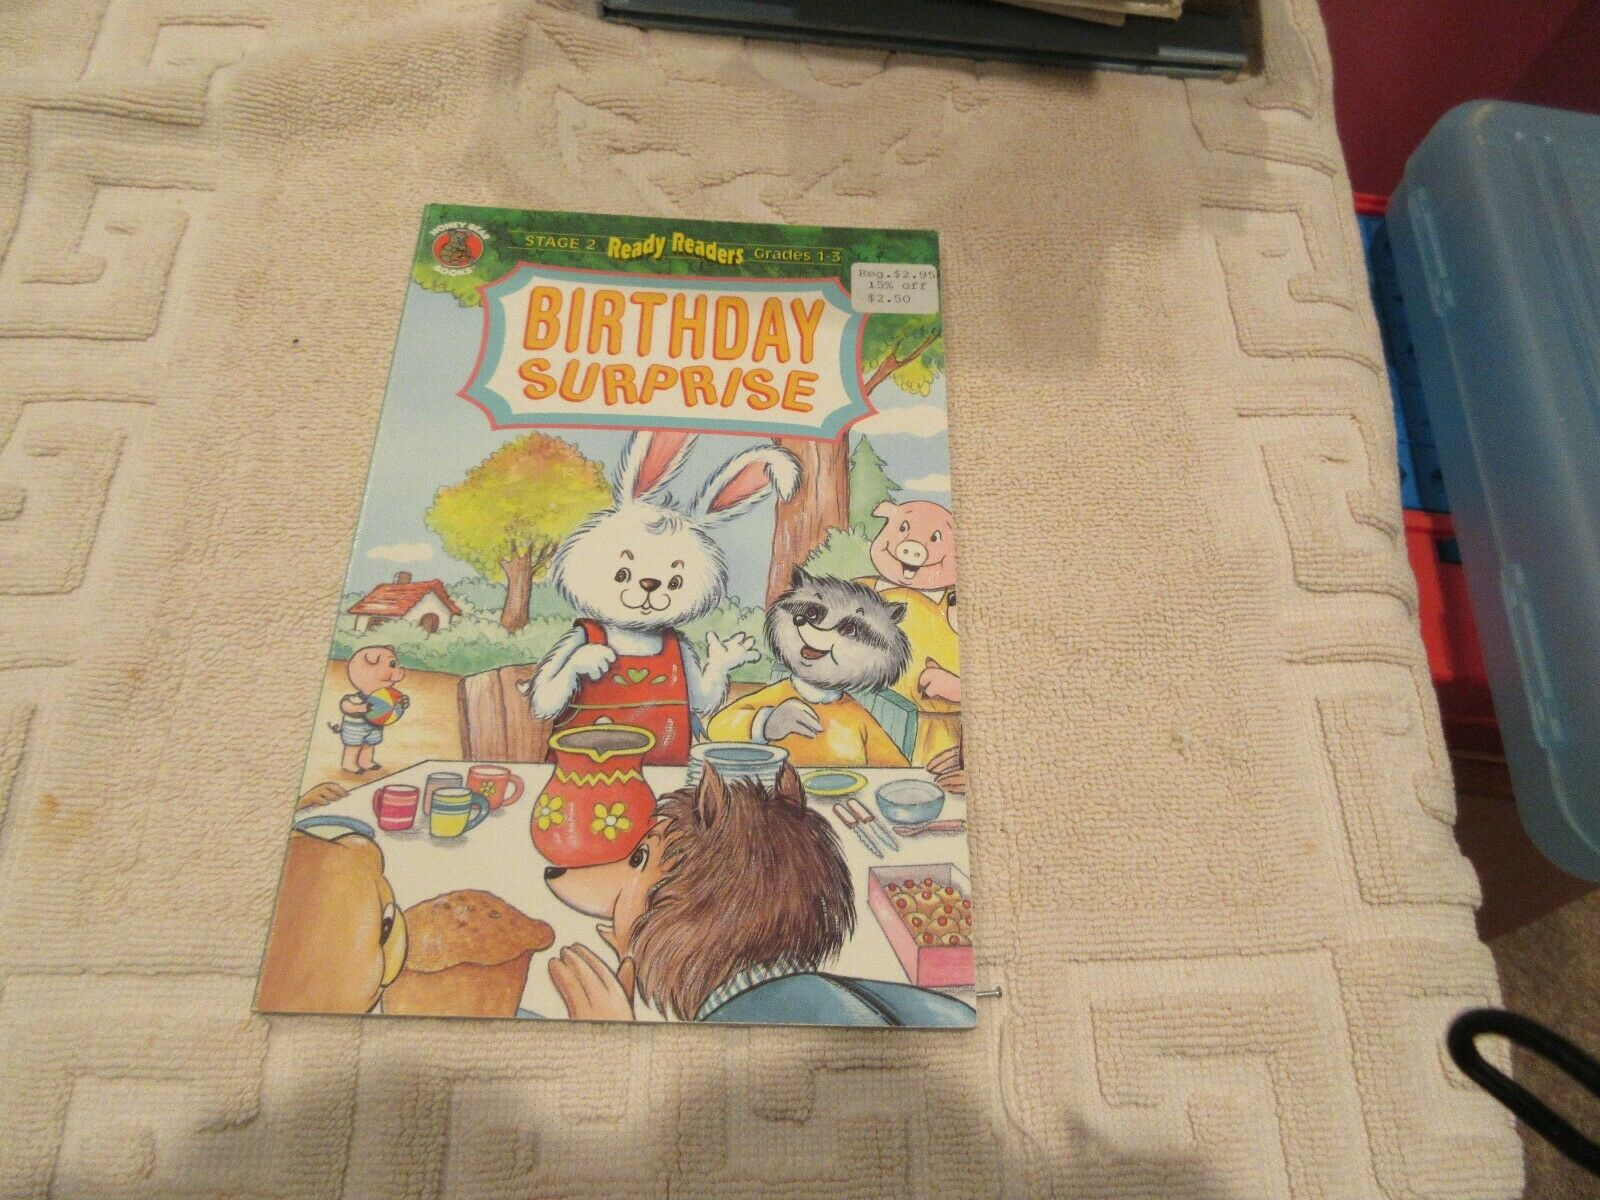 Birthday Surprise! Ready Readers , Stage 2 , Grades 1-3